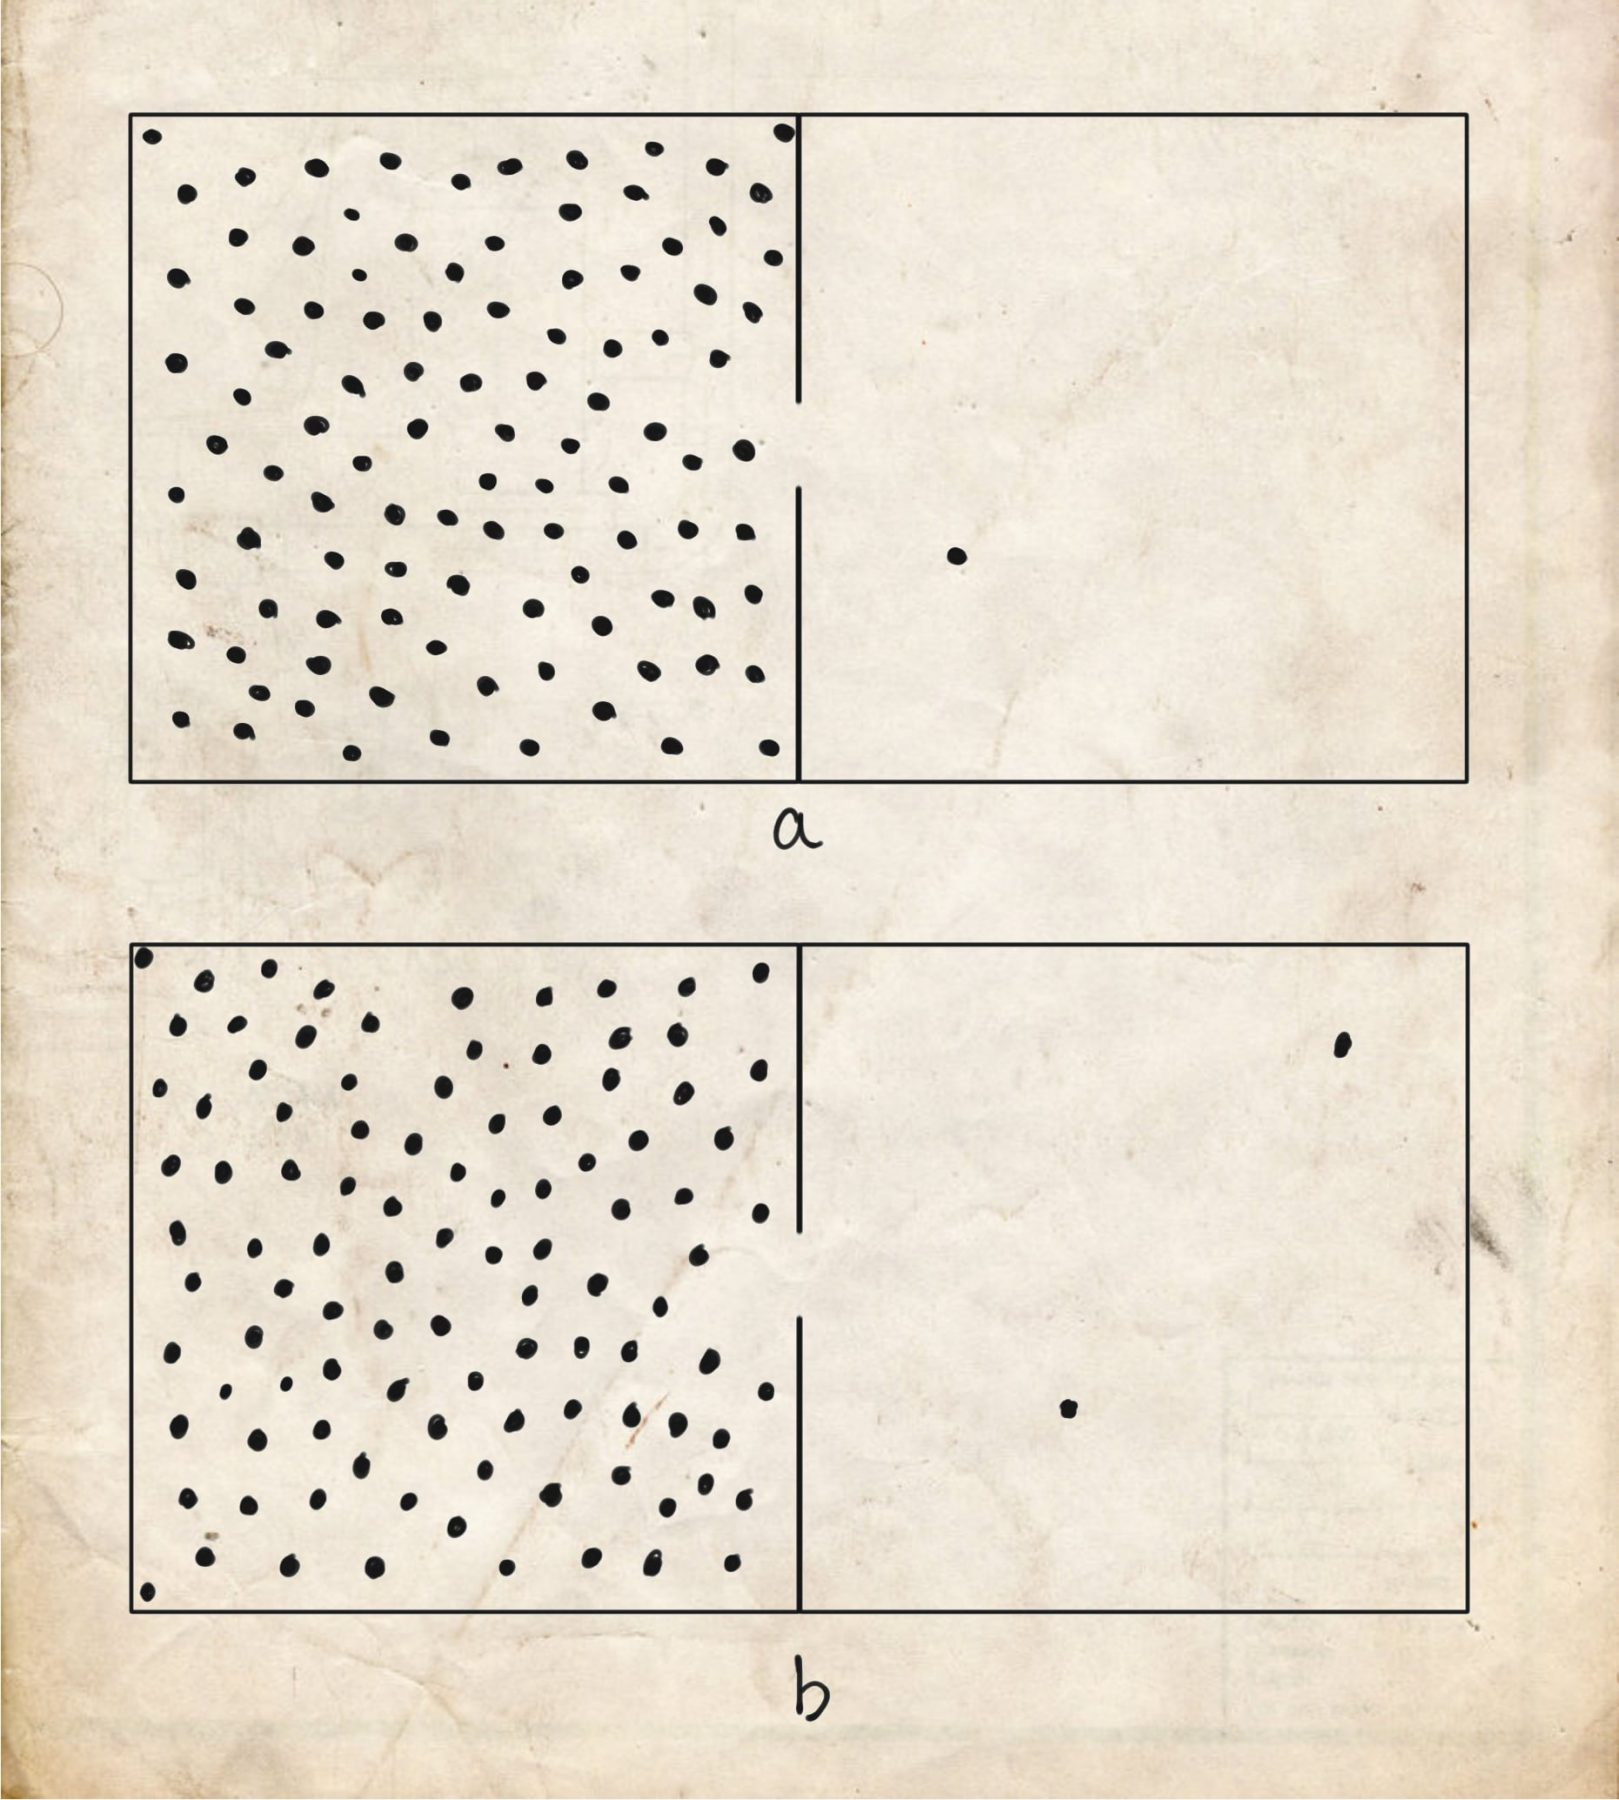 Figure 1. Two boxes with gas molecules bouncing around inside. In box (a), one has escaped, 99 remain. In box (b), 98 remain, two have escaped.